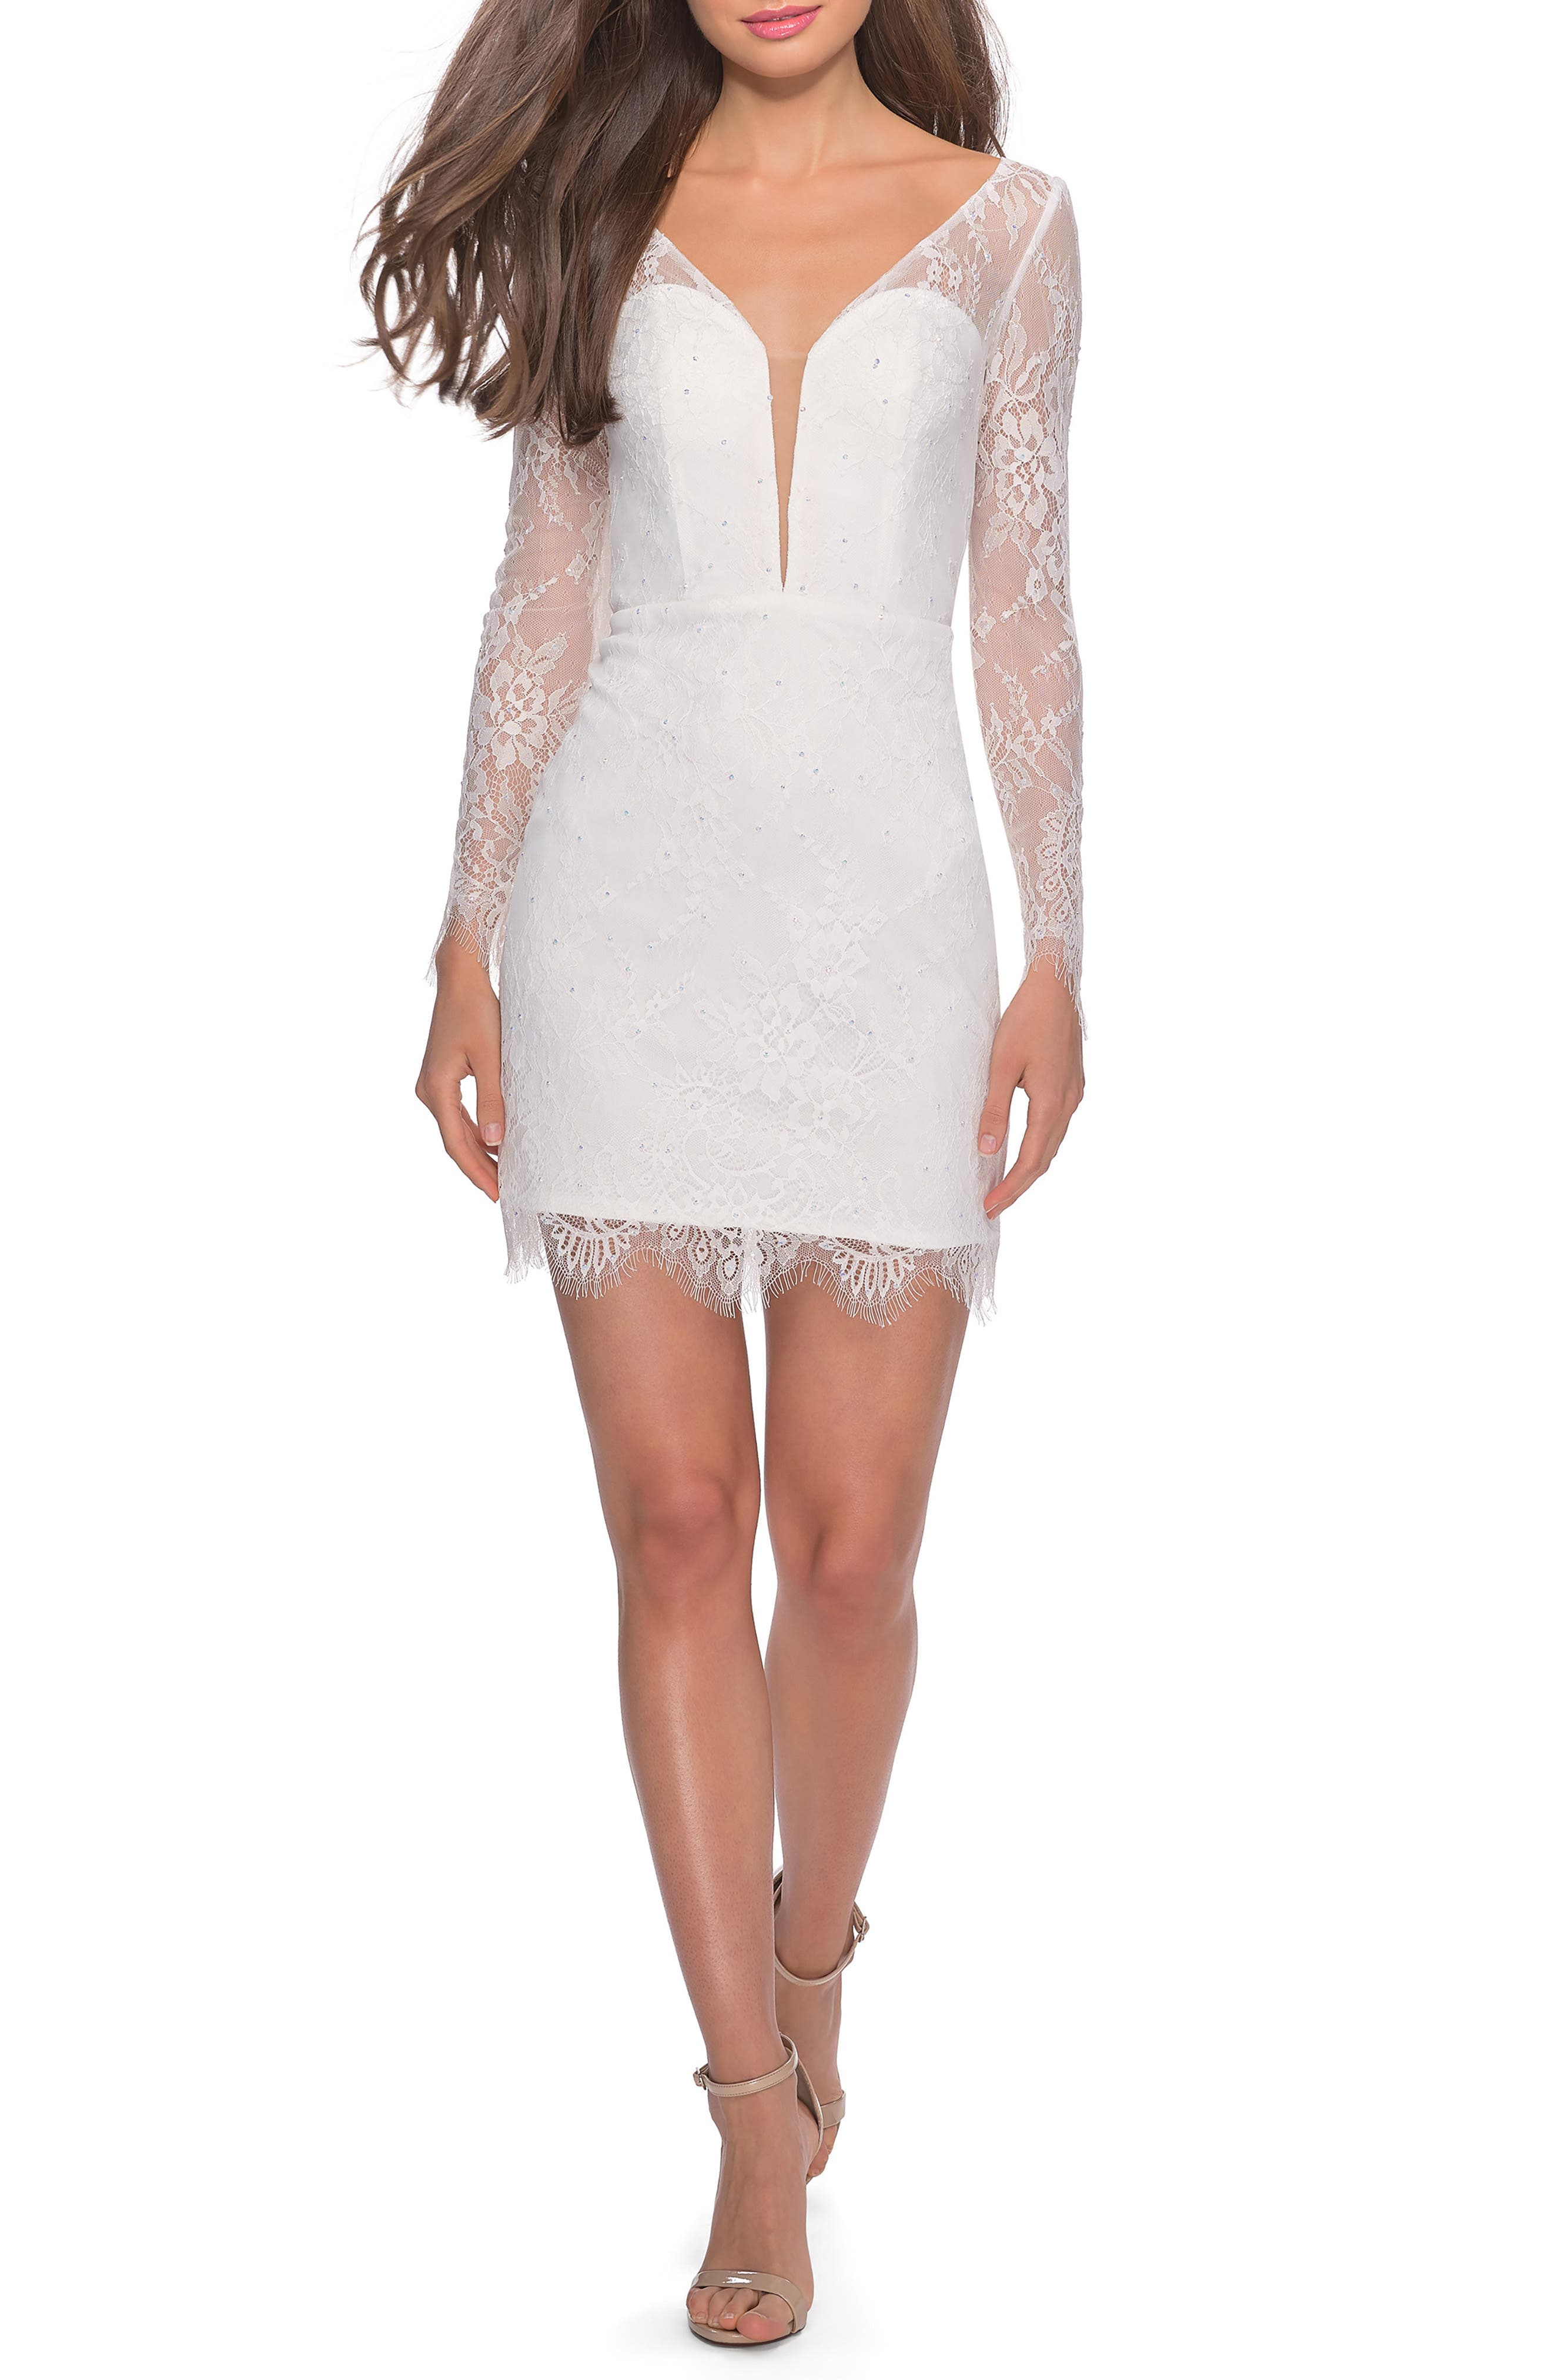 La Femme Long Sleeve Lace Cocktail Dress, White